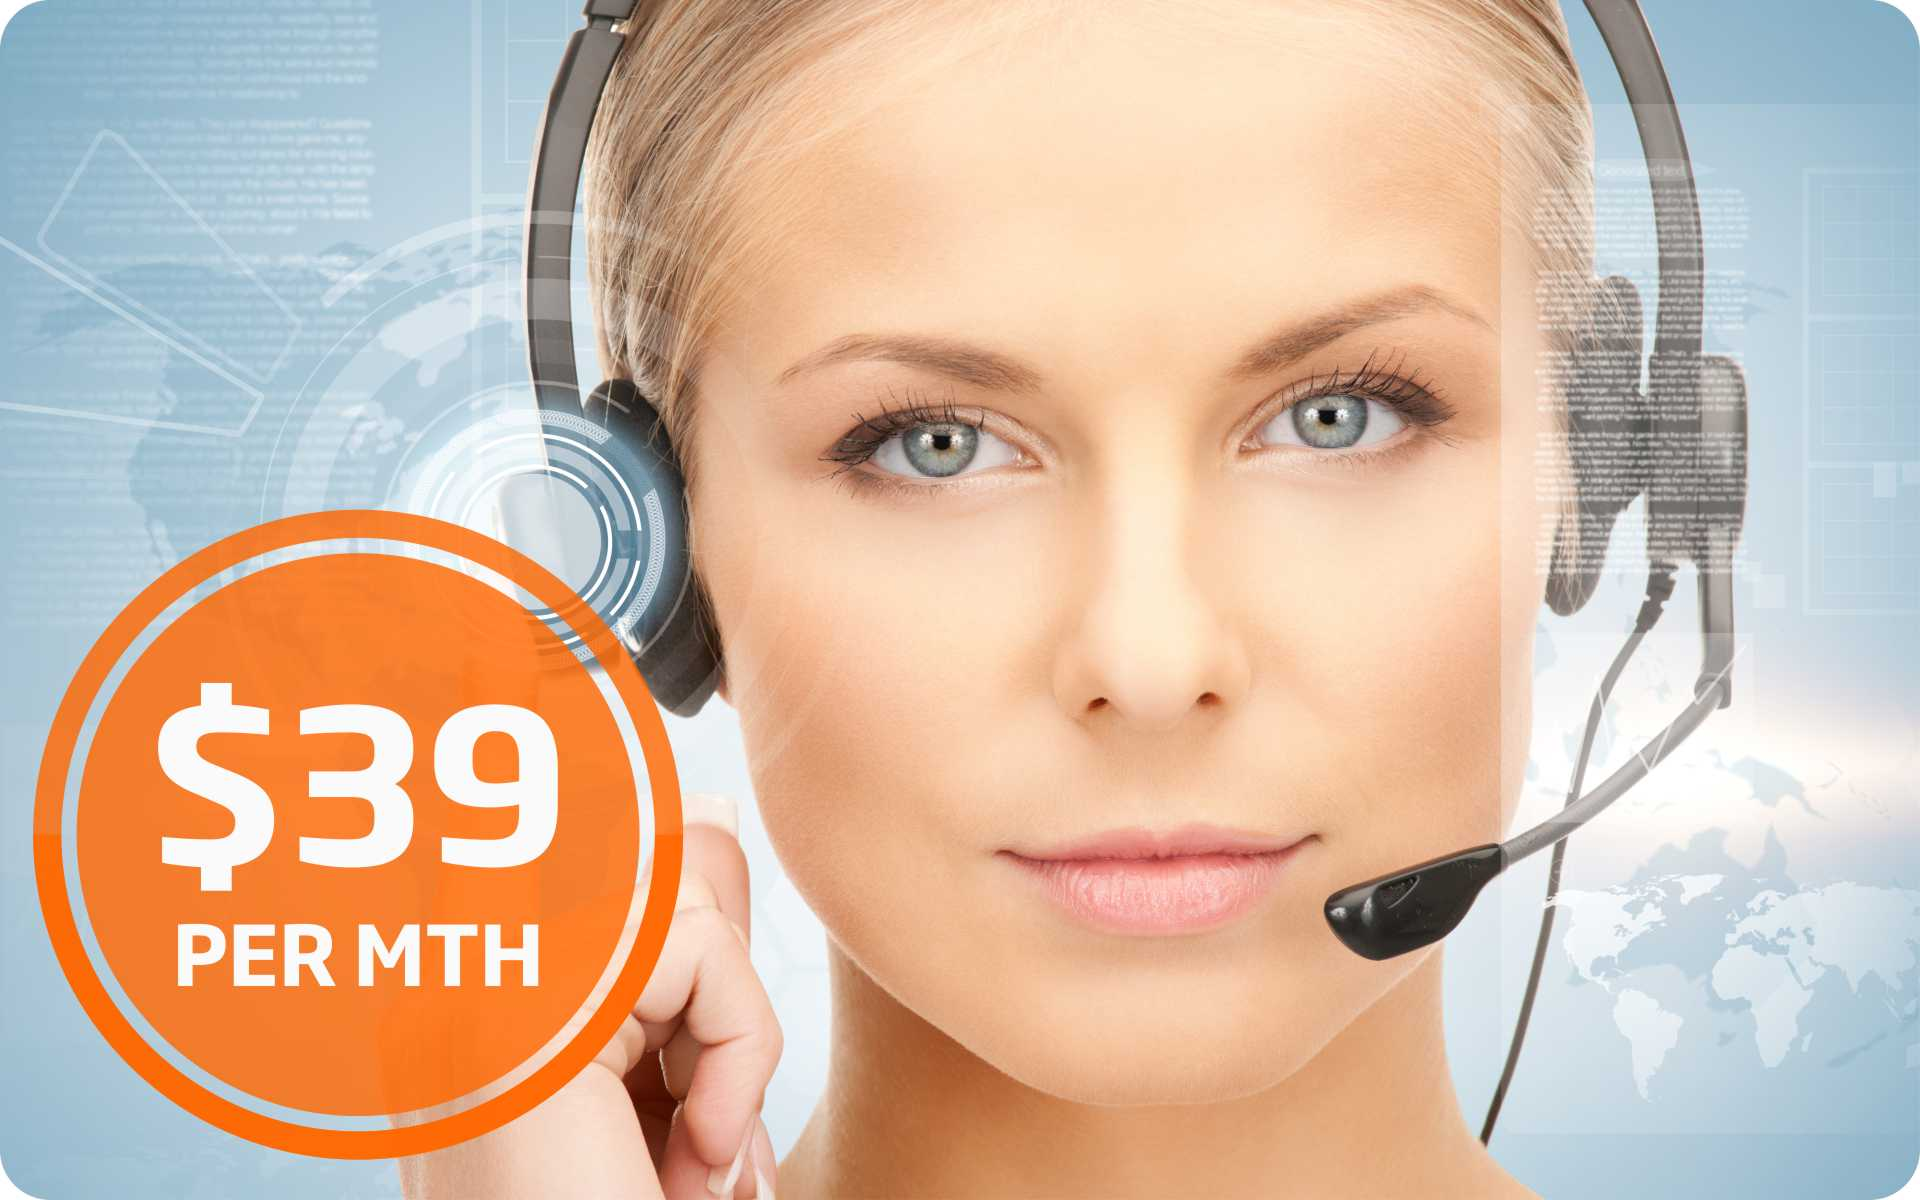 telephone-answering-services-live-phone-answering-service-australia-BUNDLE-130418.jpg